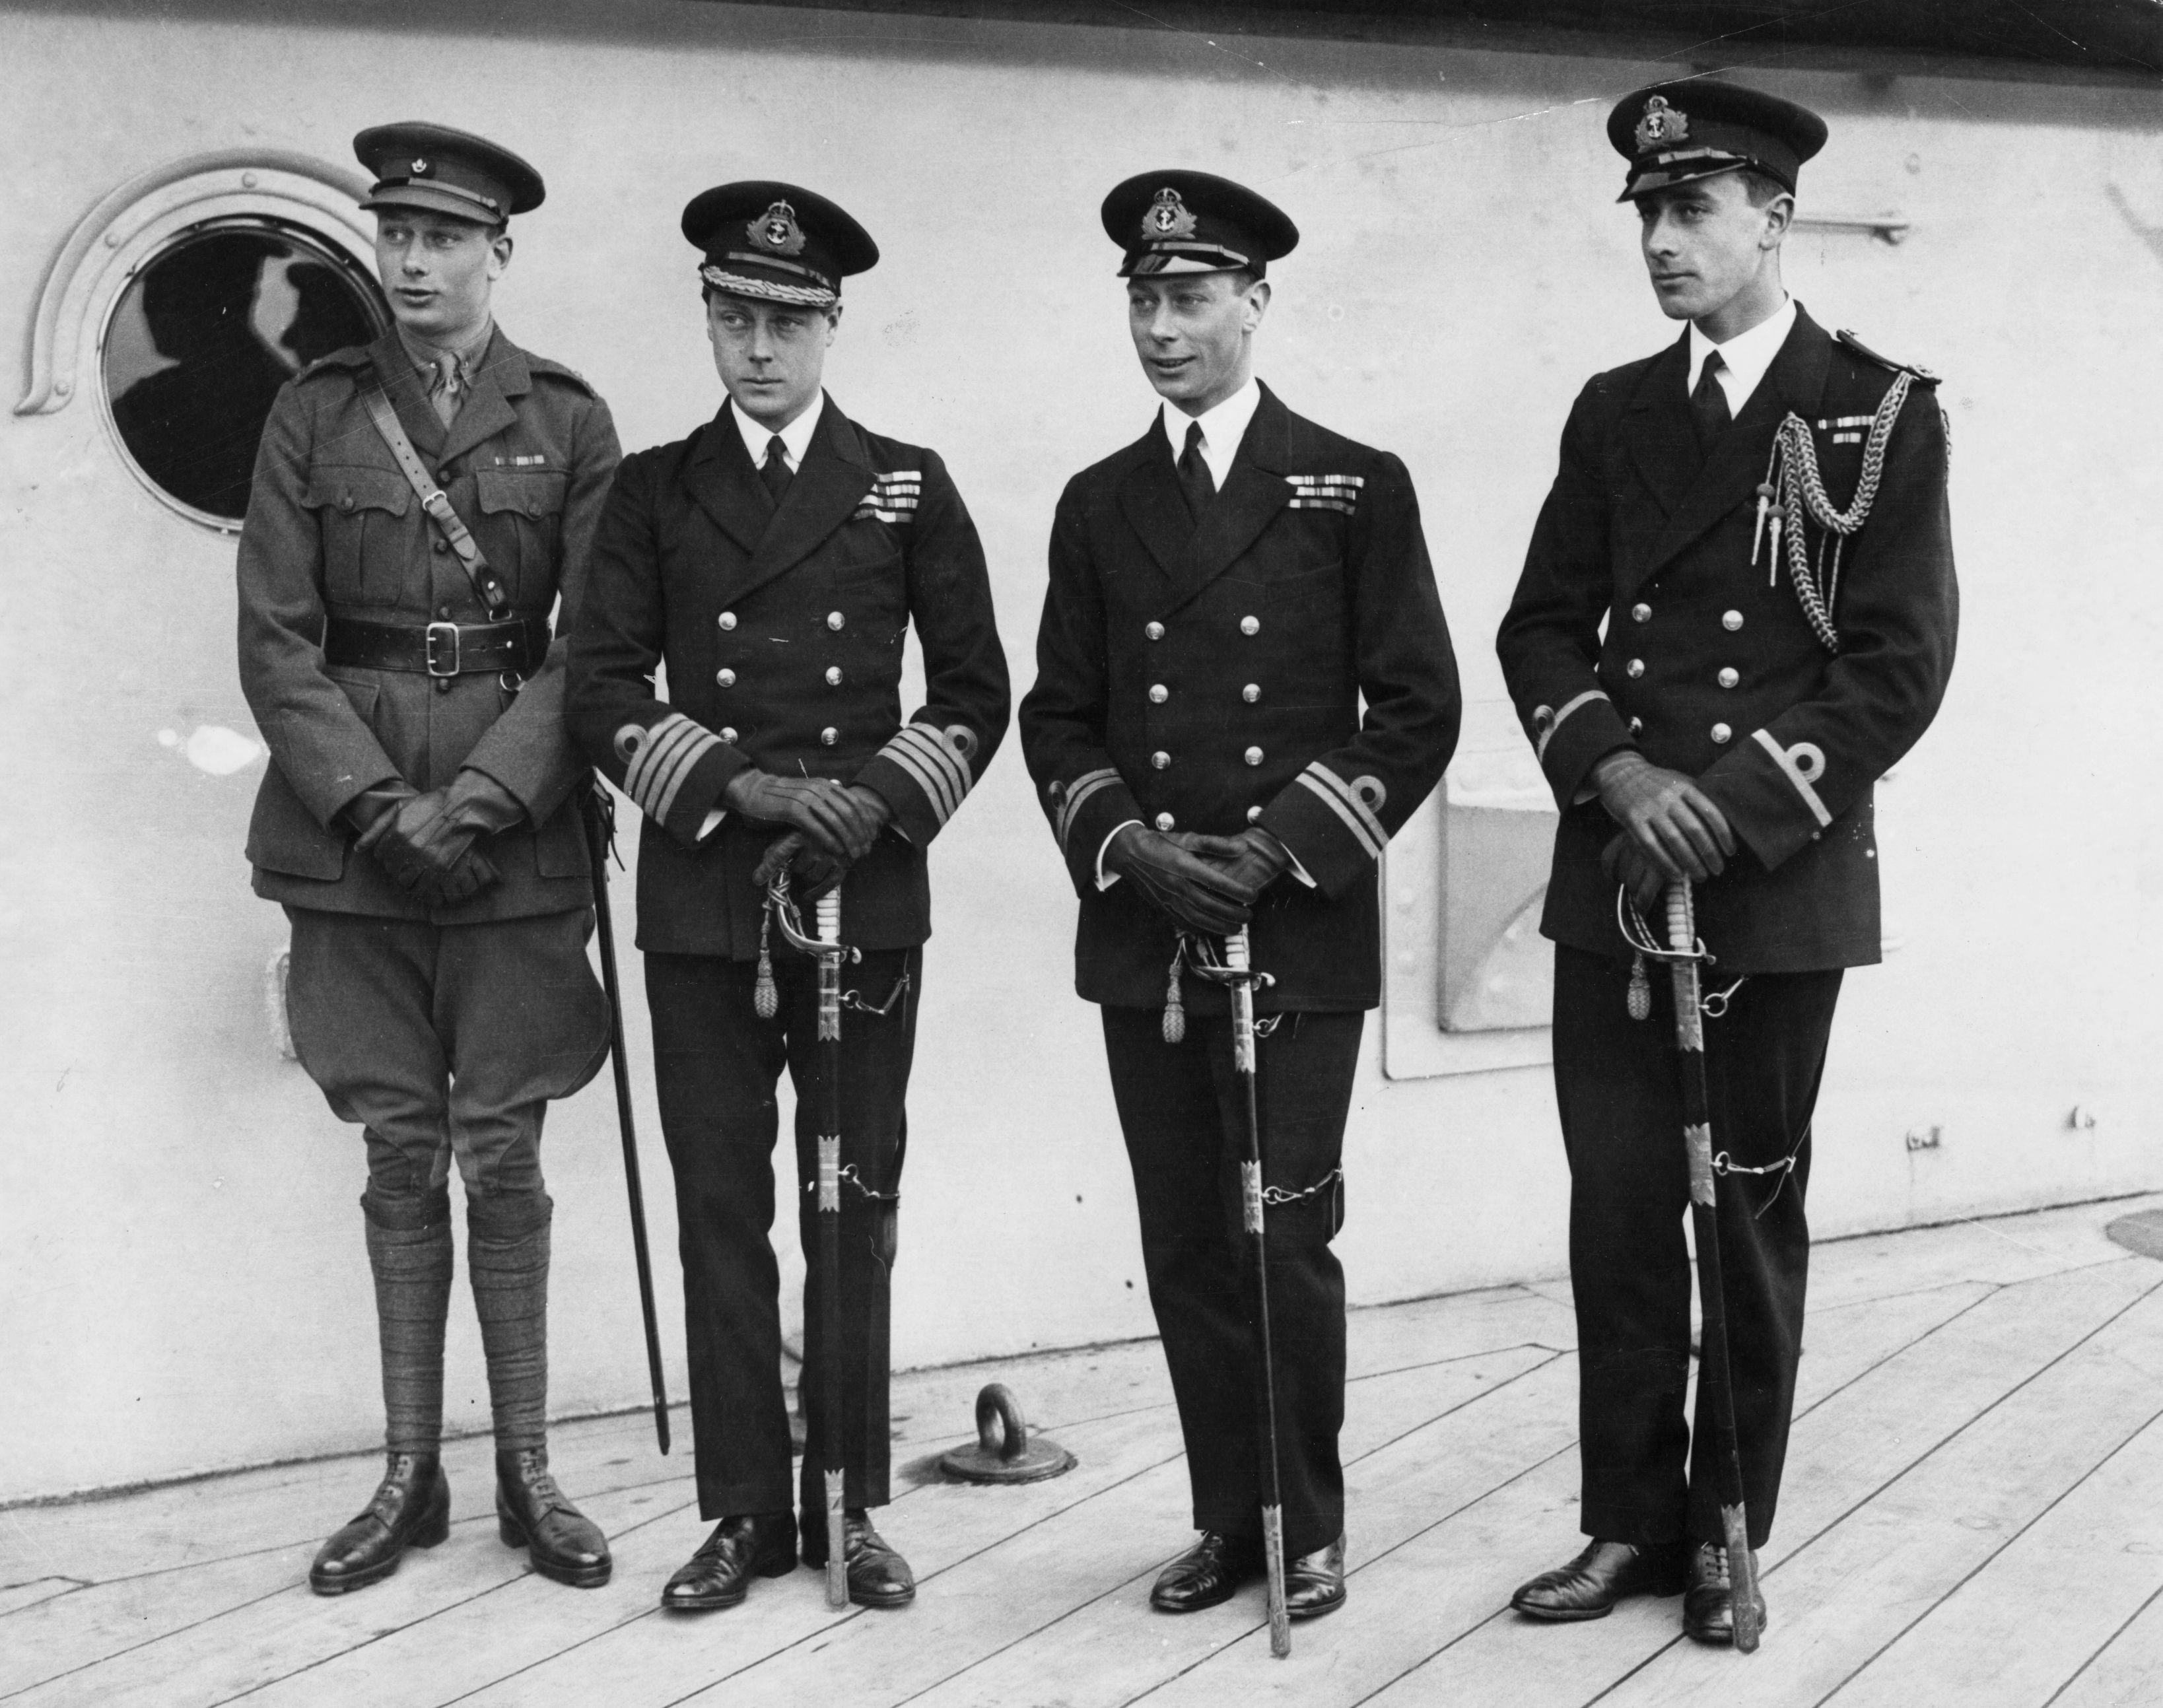 Edward, Prince Of Wales, the  Duke of Gloucester, George Duke of York and Lord Louis Mountbatten in 1920 | Source: Getty Images